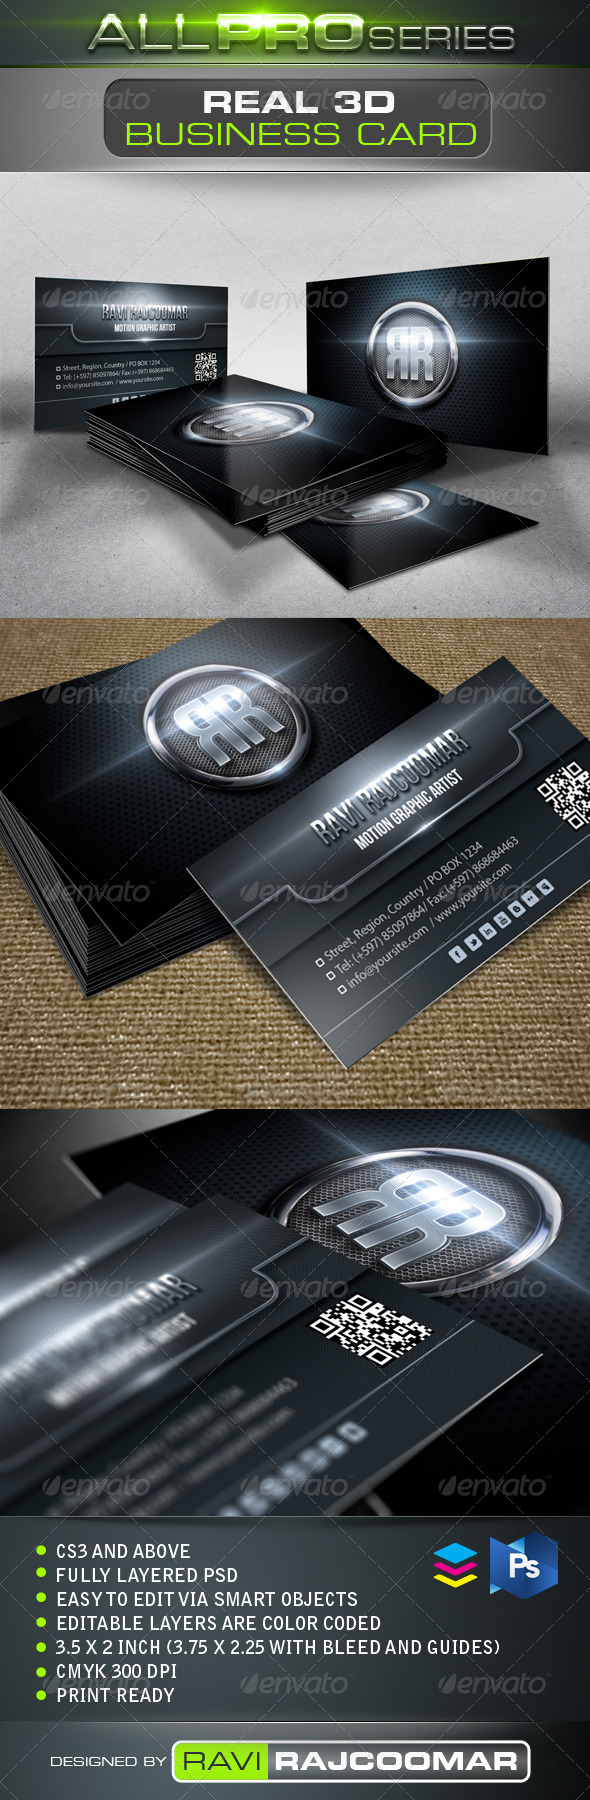 Real 3D Business Card - Creative Business Cards